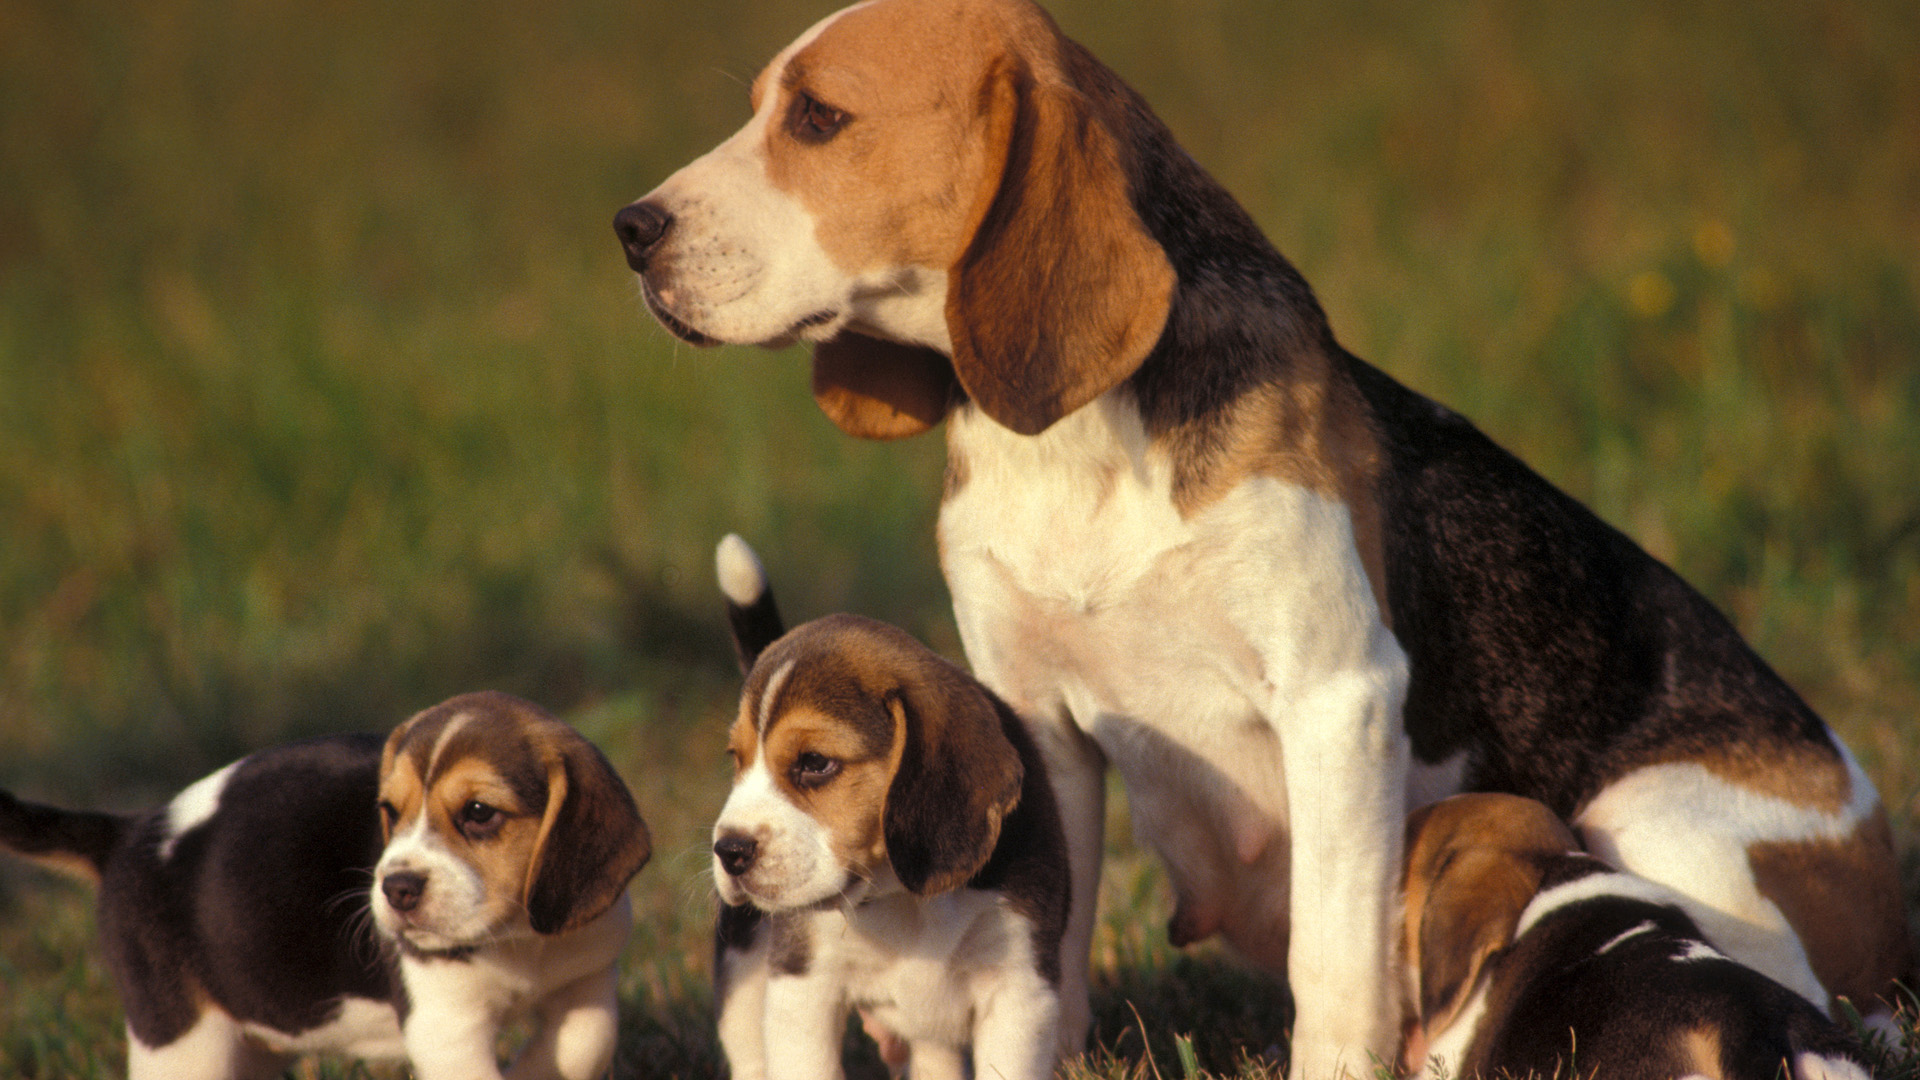 beagle dog with puppies